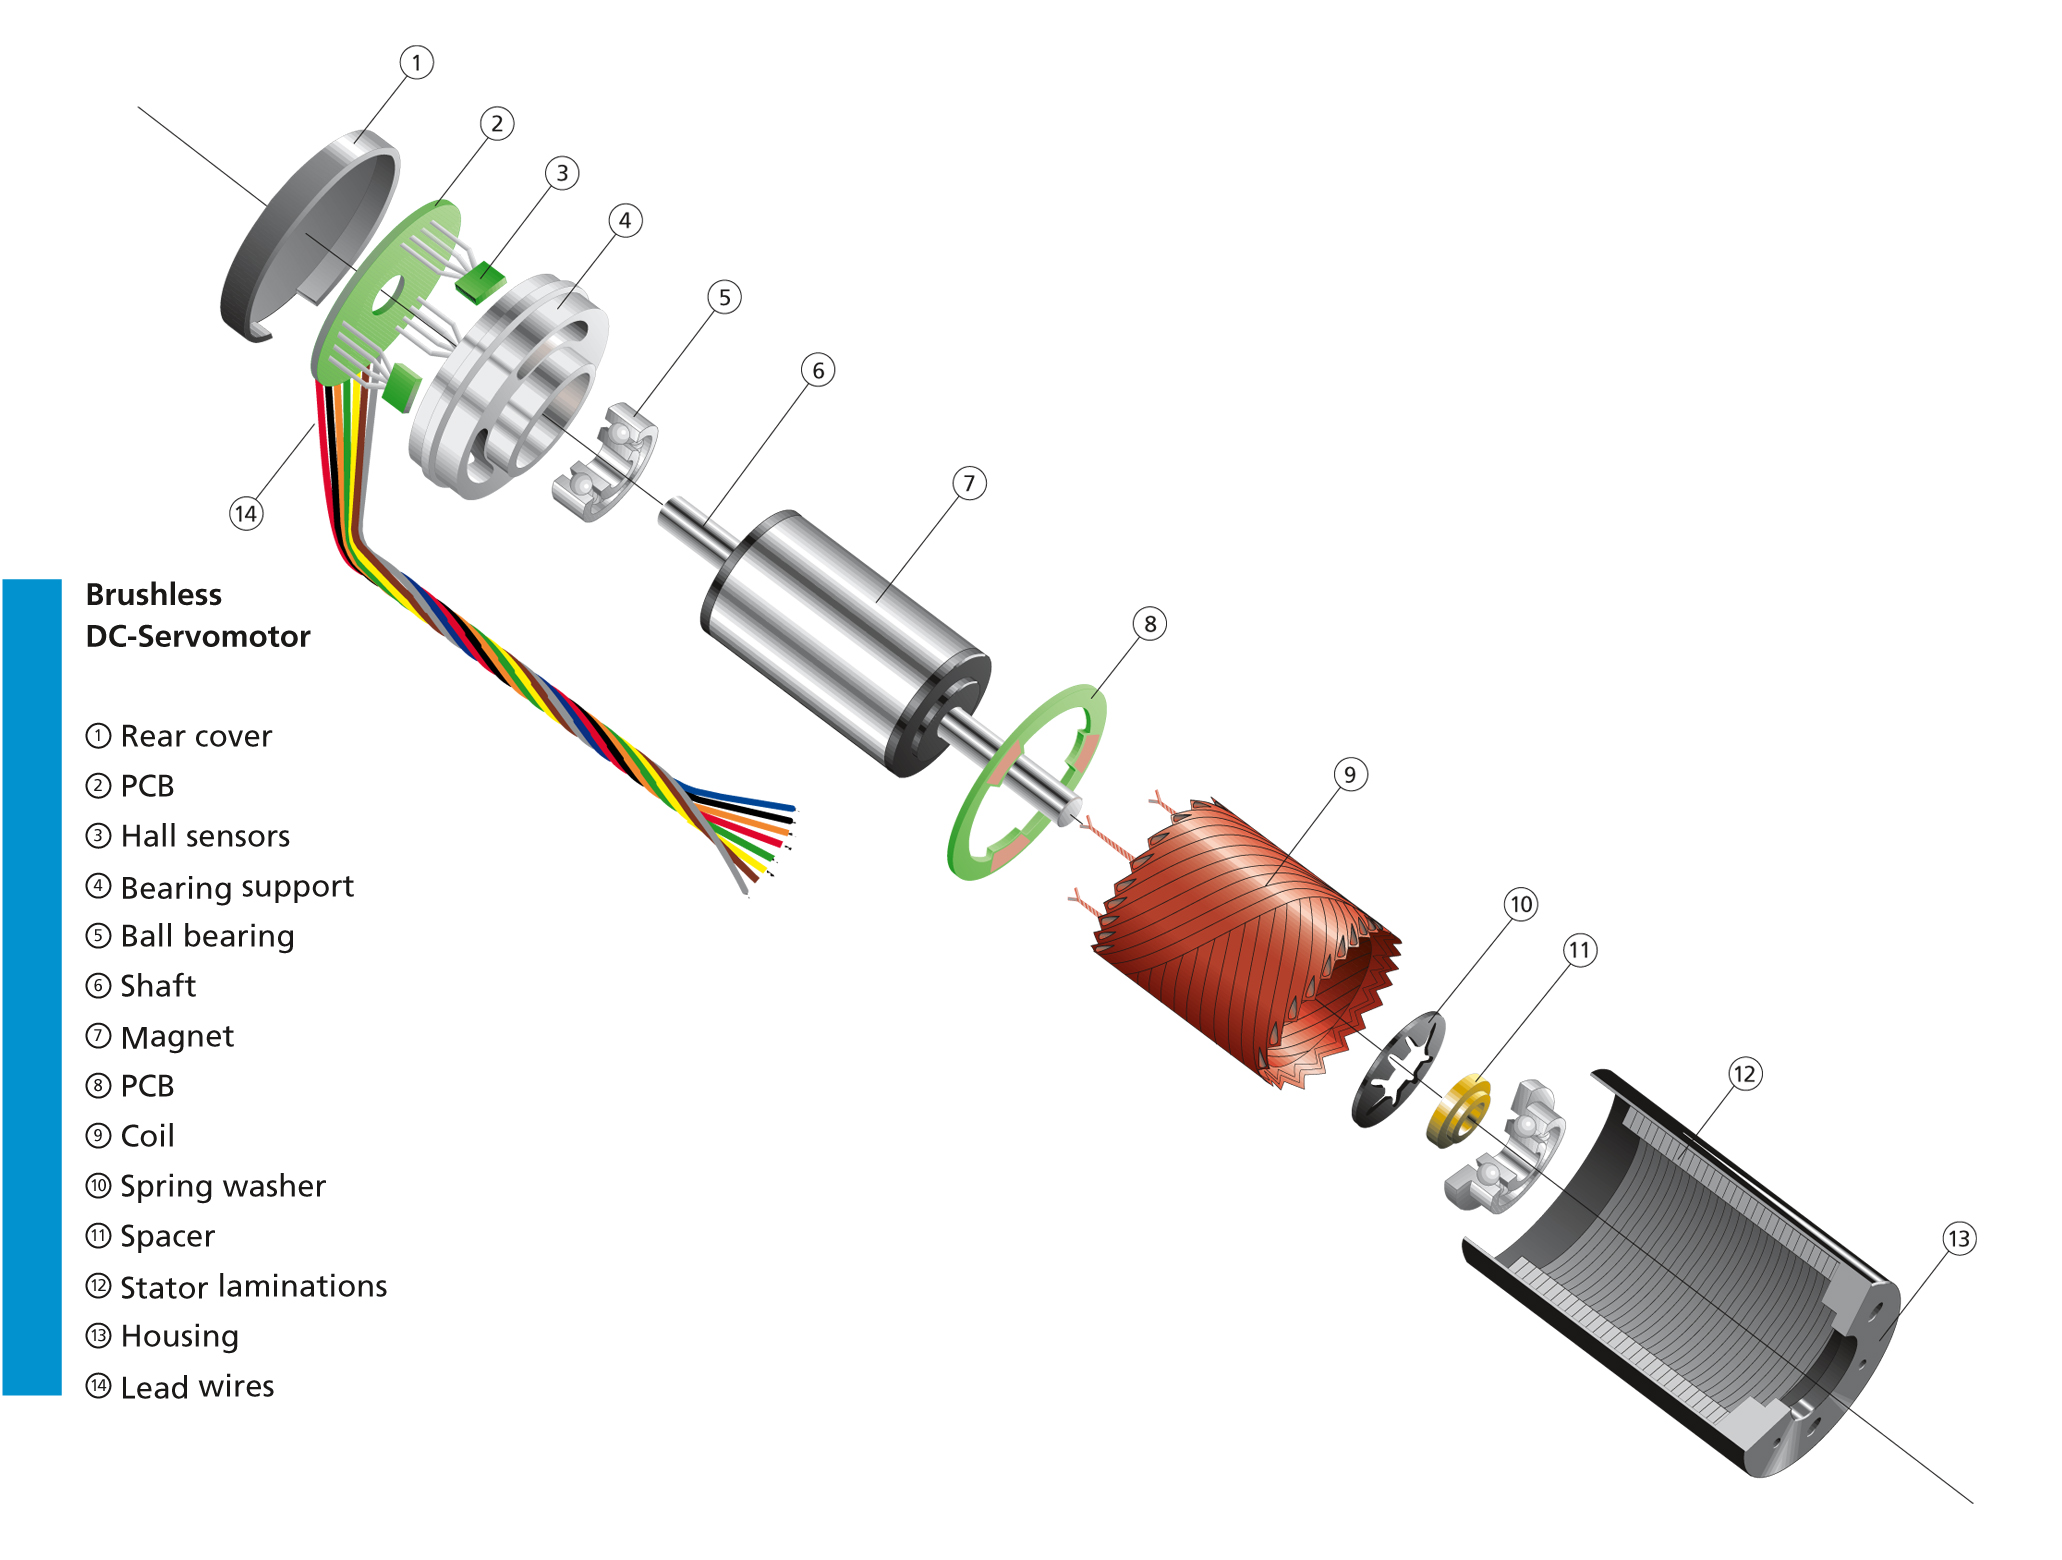 brushless motor diagram